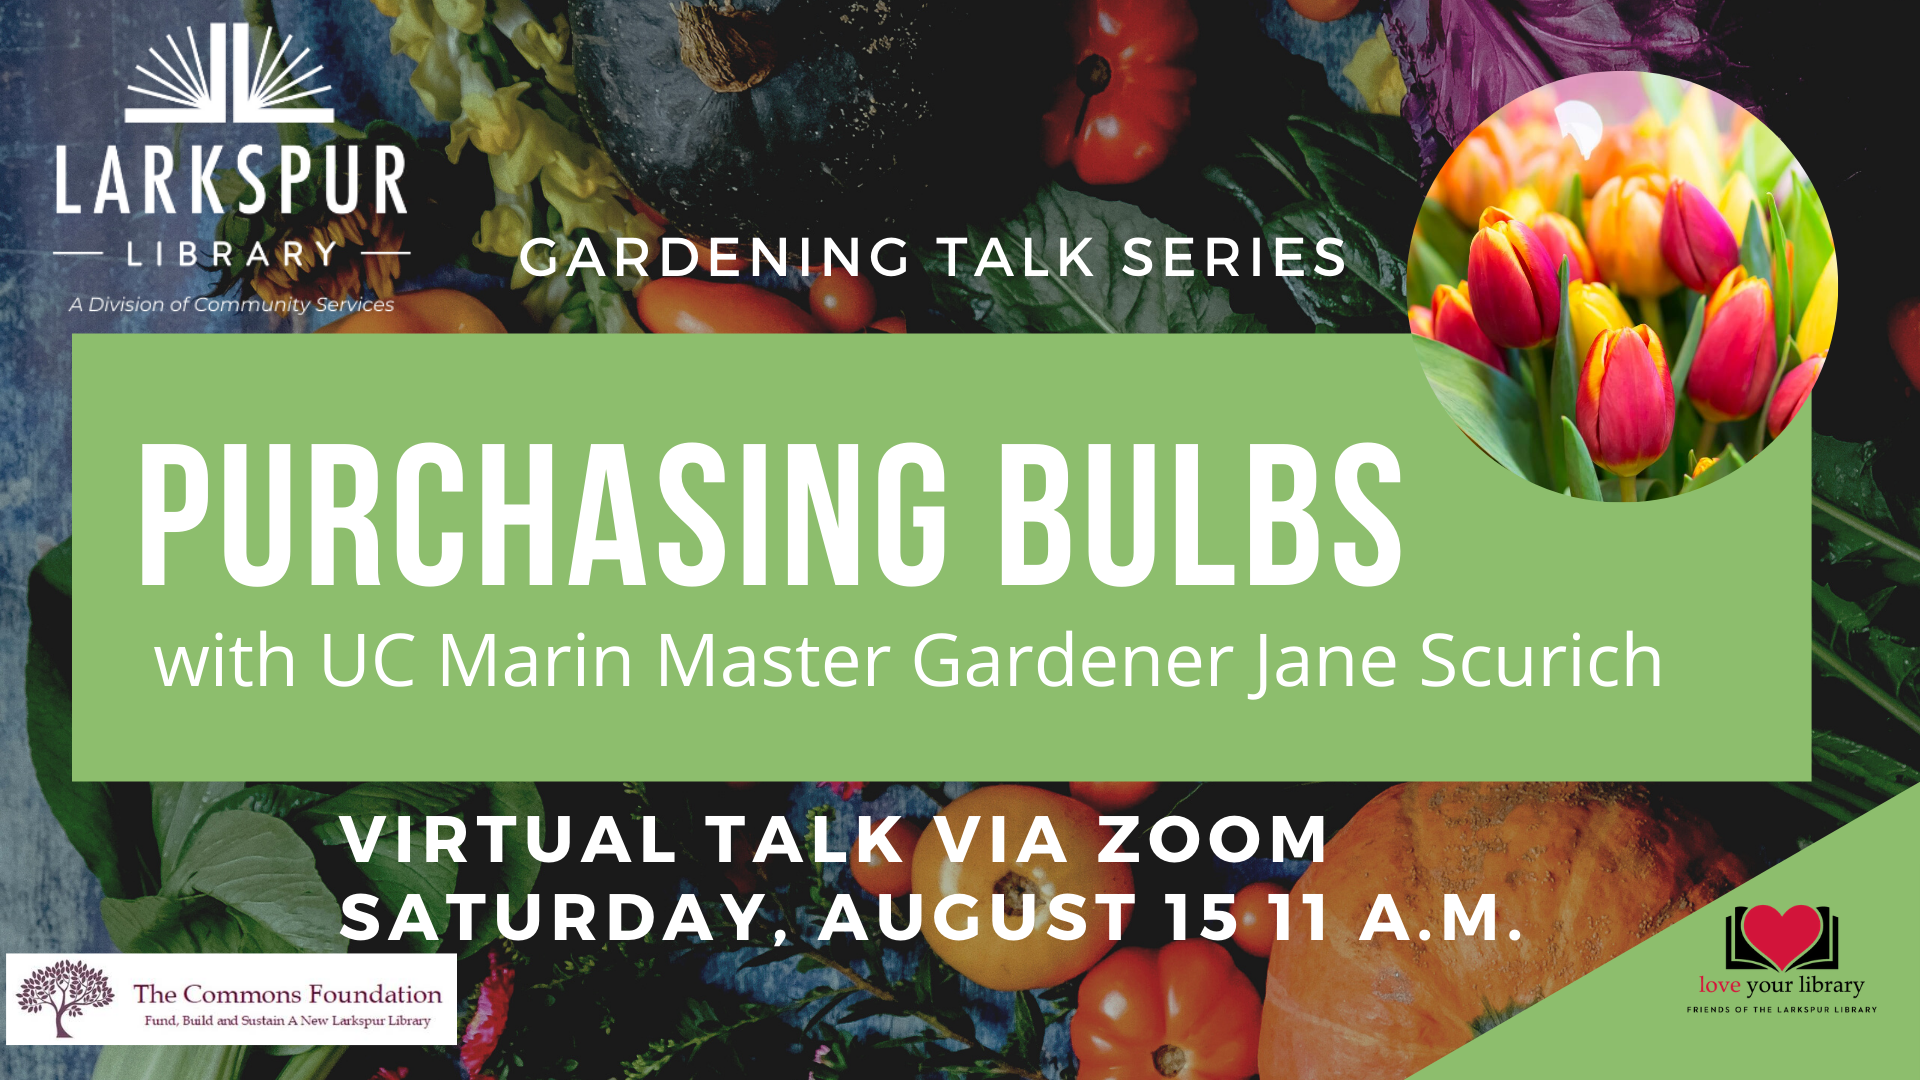 Purchasing Bulbs with UC Marin Master Gardener Jane Scurich Aug 15 at 11 AM